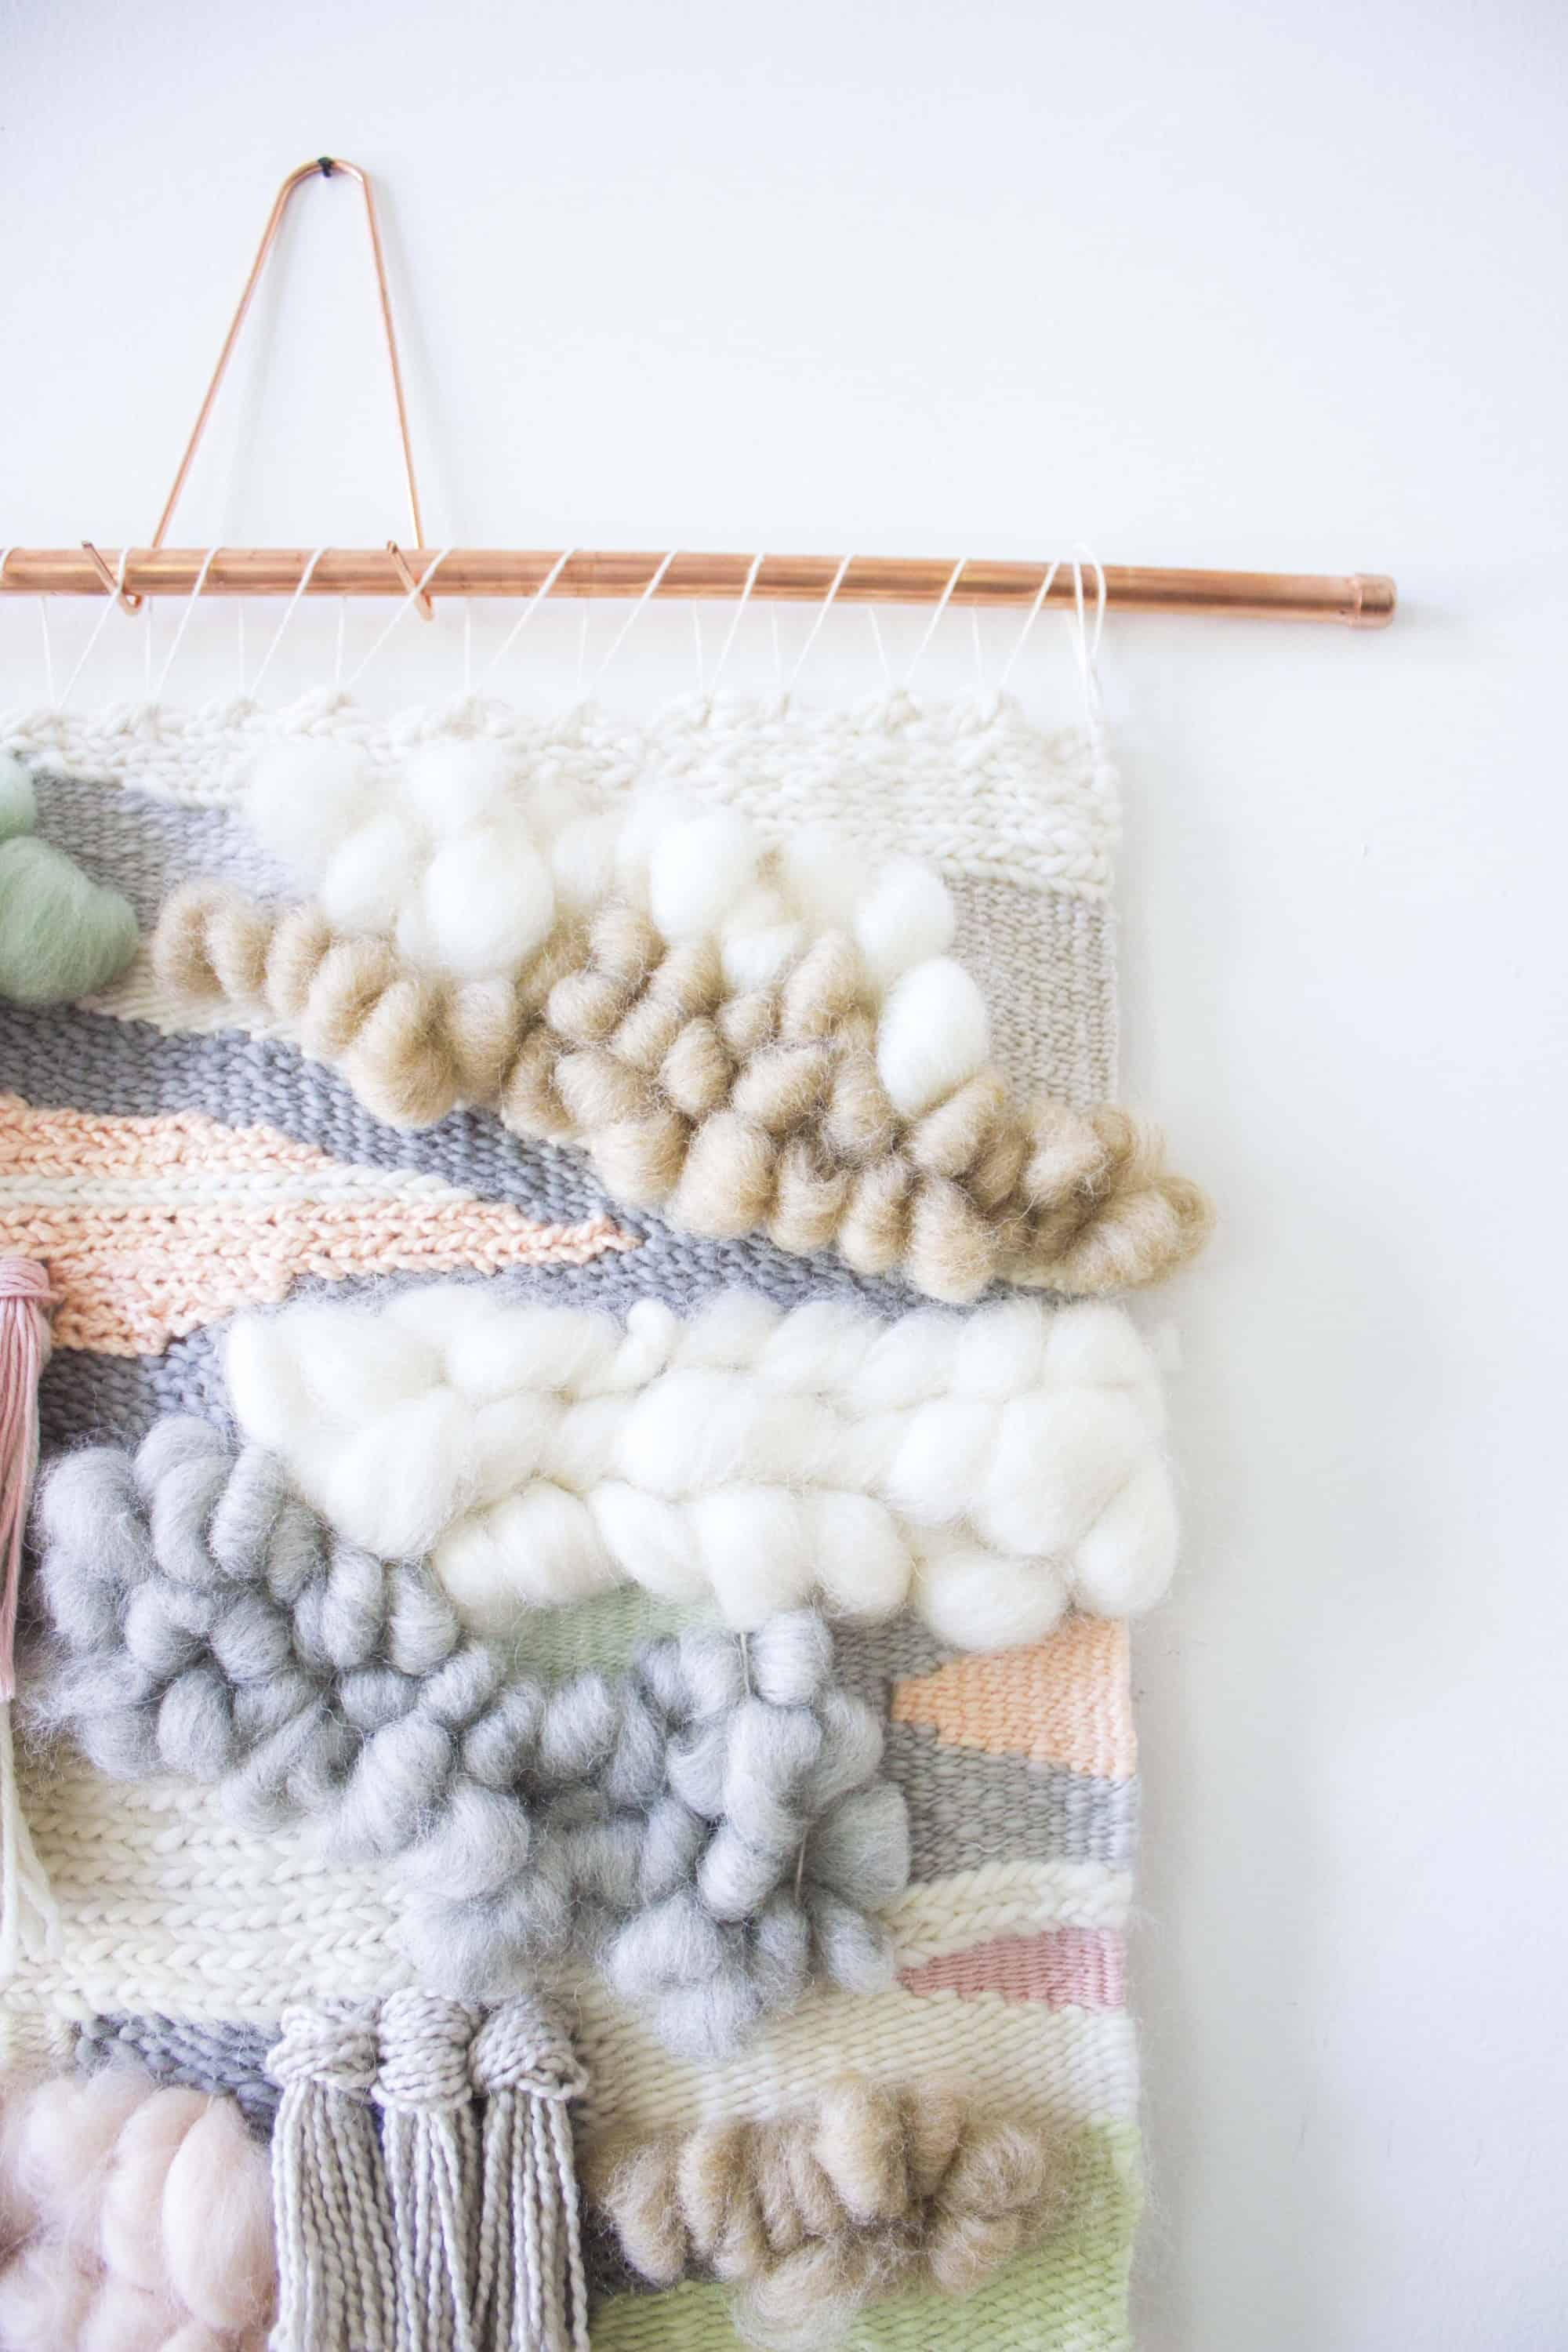 Inset roving pulls in weaving